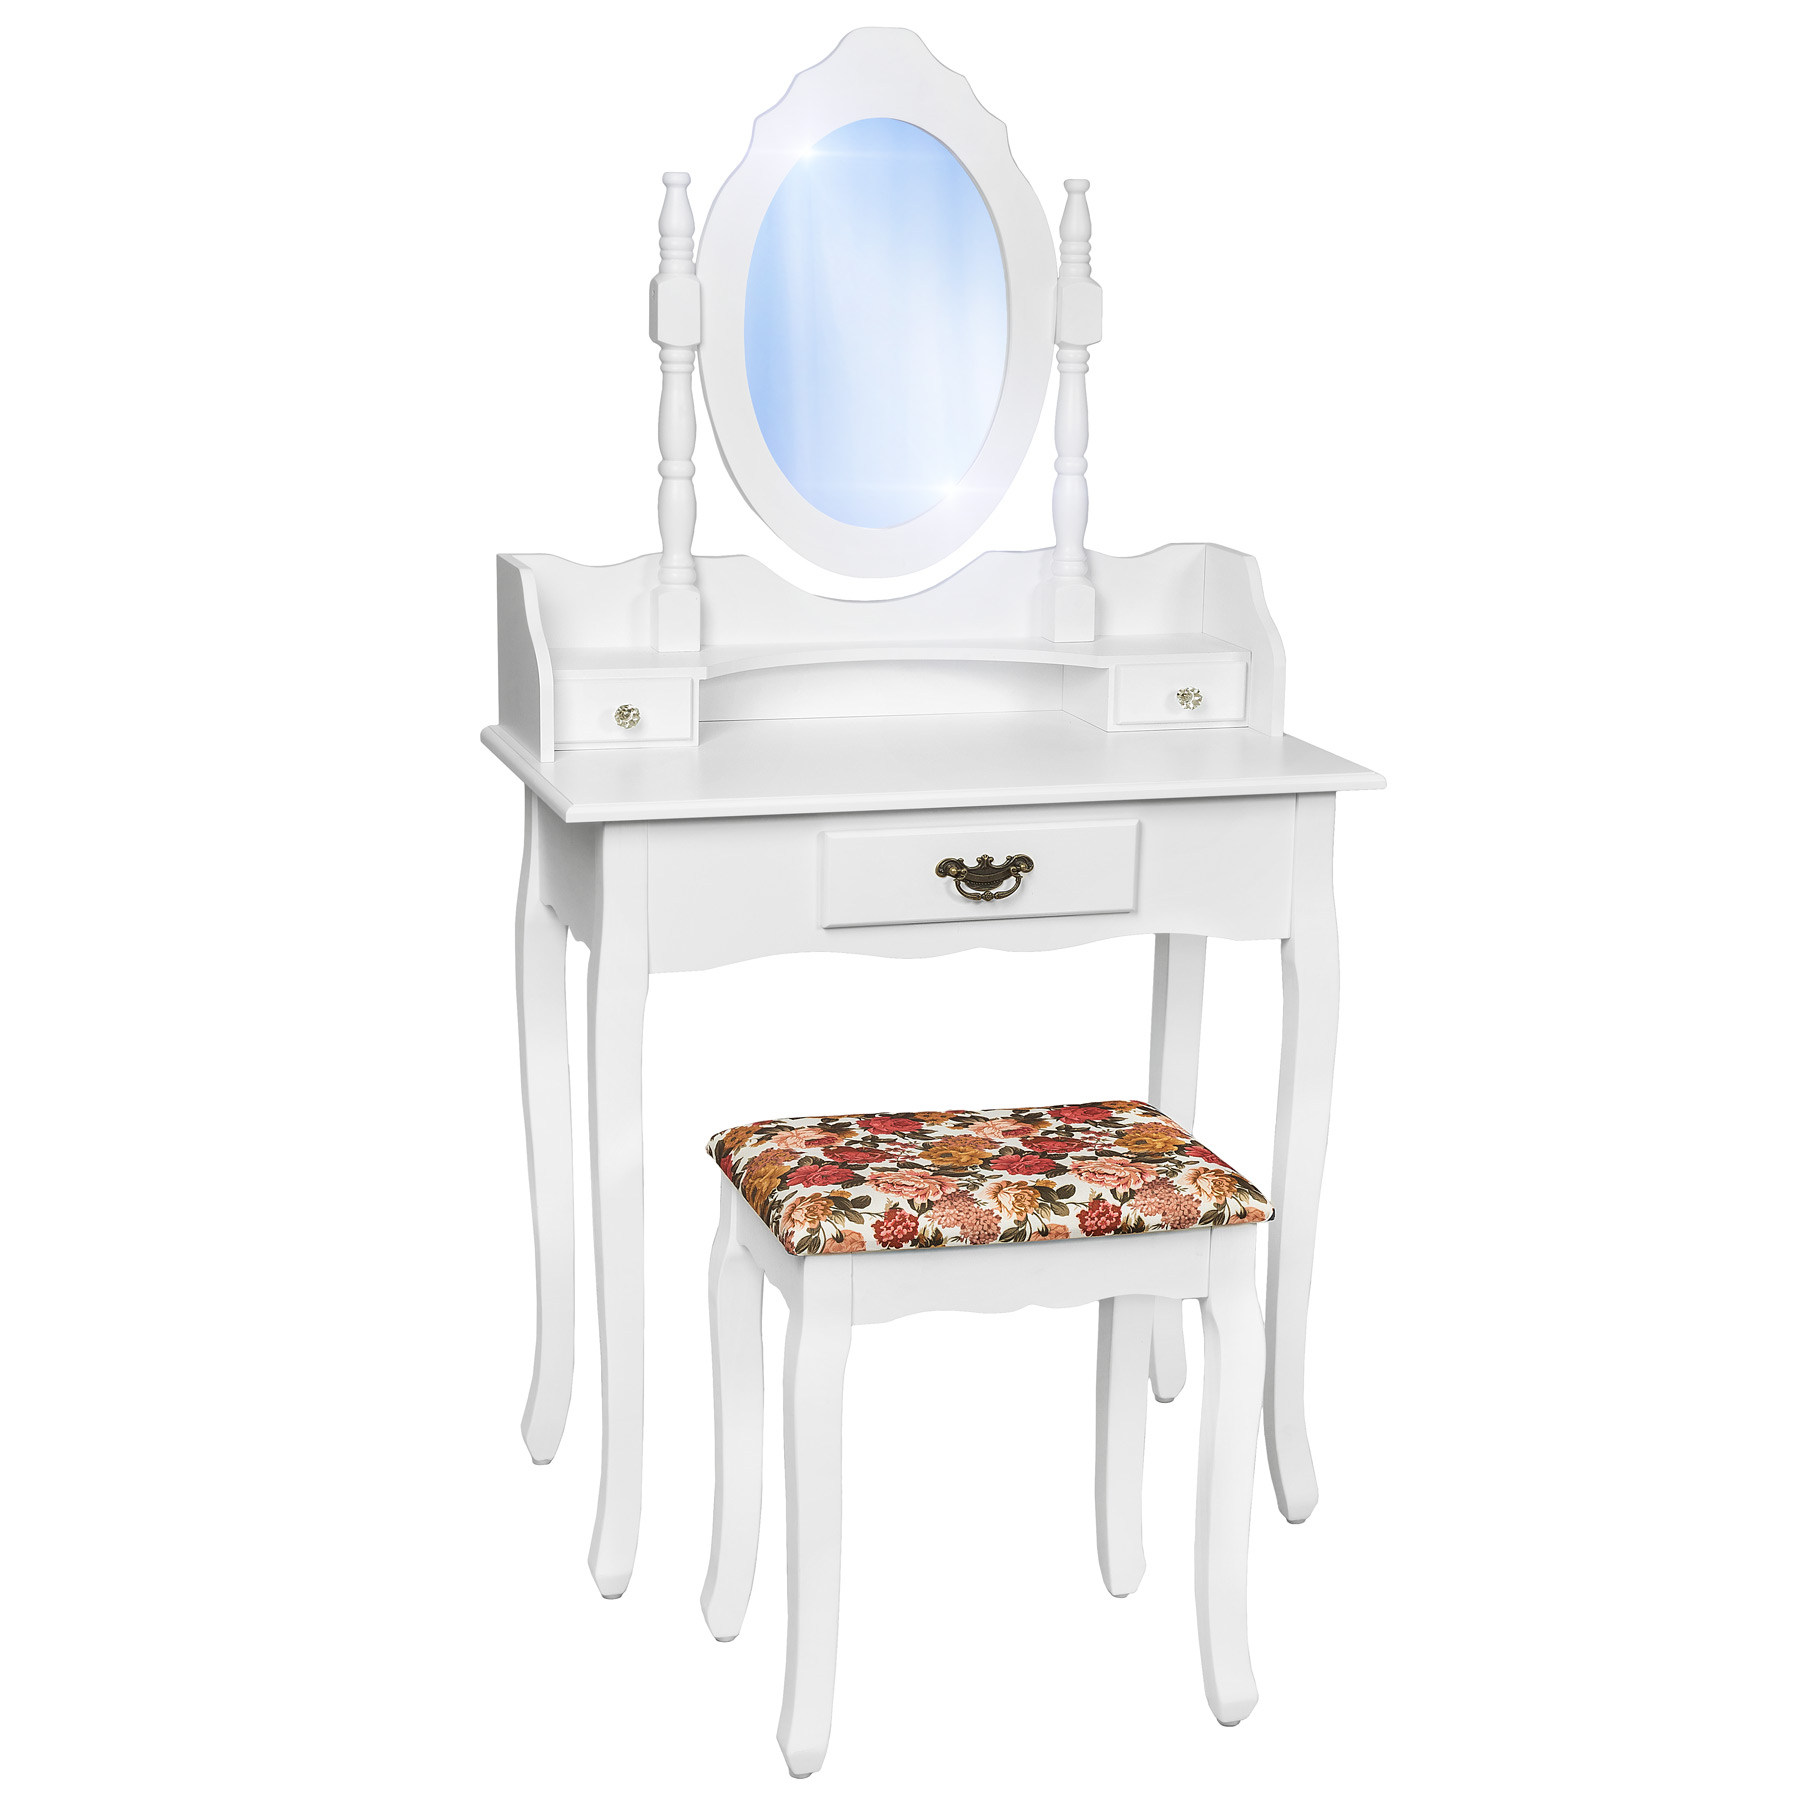 Make up table with stool dressing table mirror table vanity dressing table new ebay - Stool for vanity table ...